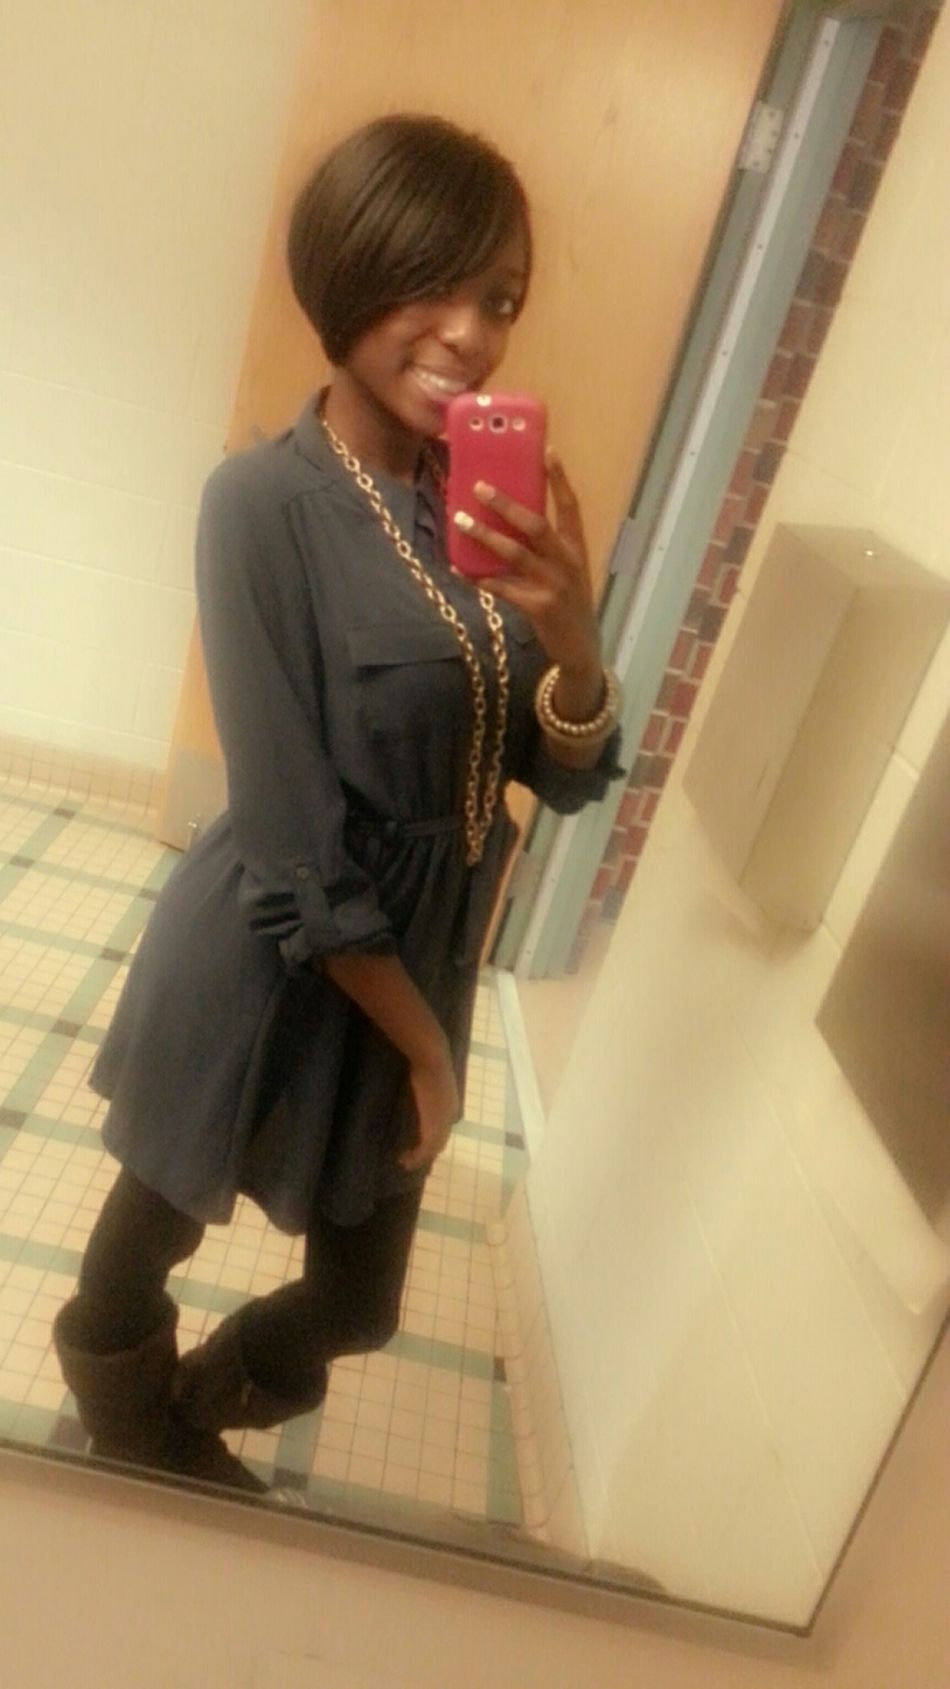 last week bathroom pic